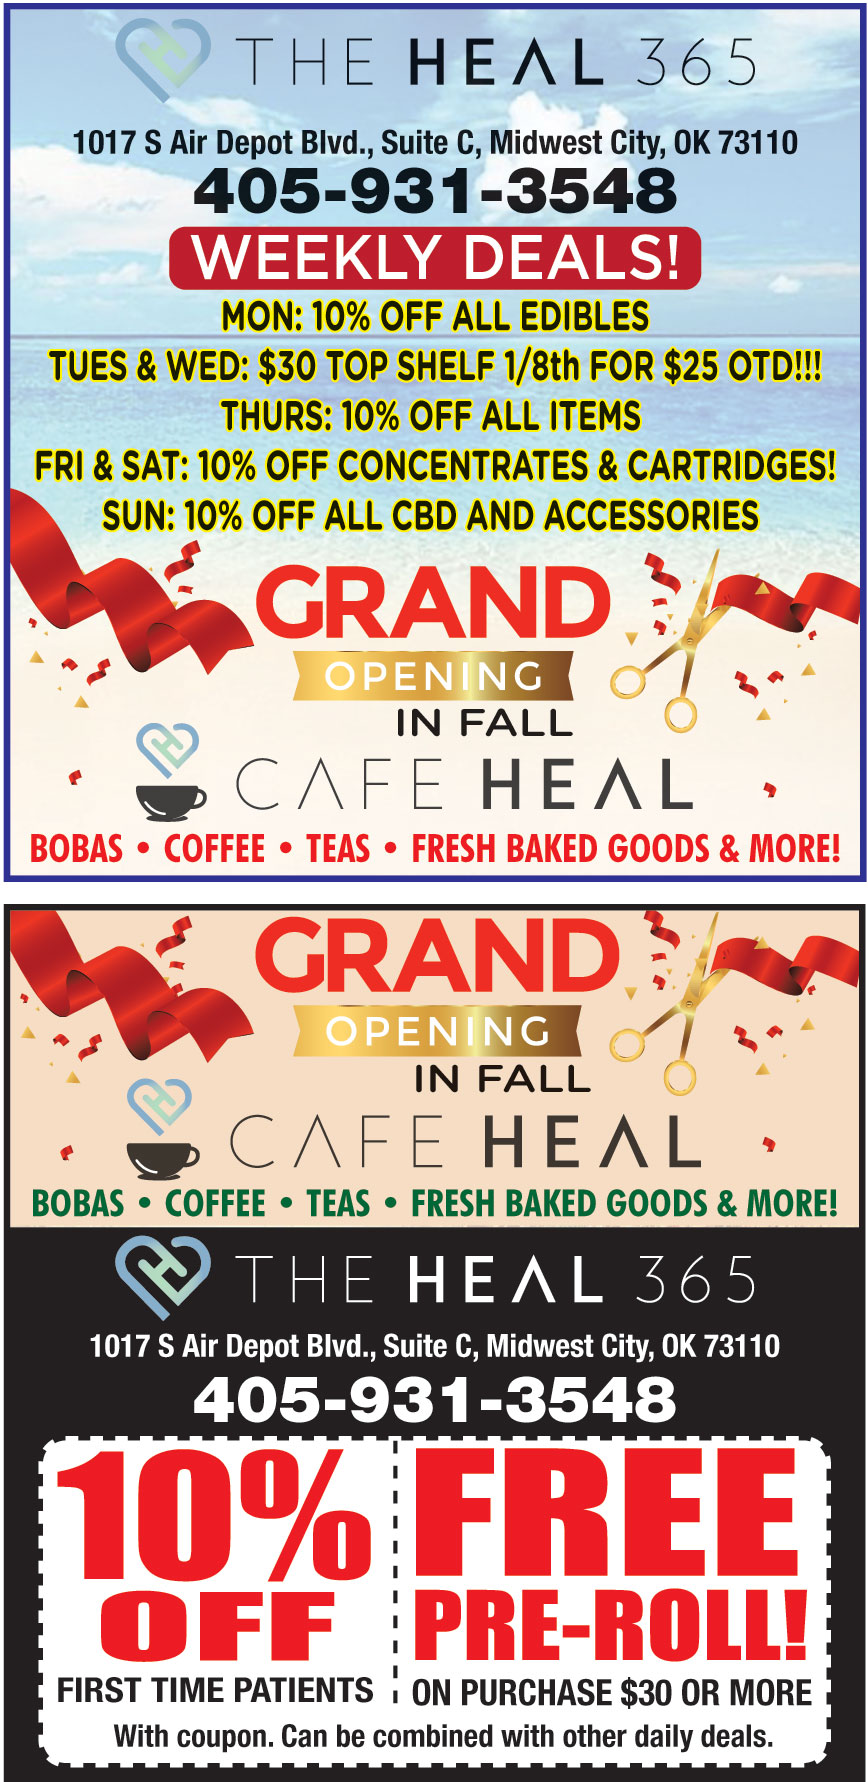 THE HEAL 365 DISPENSARY